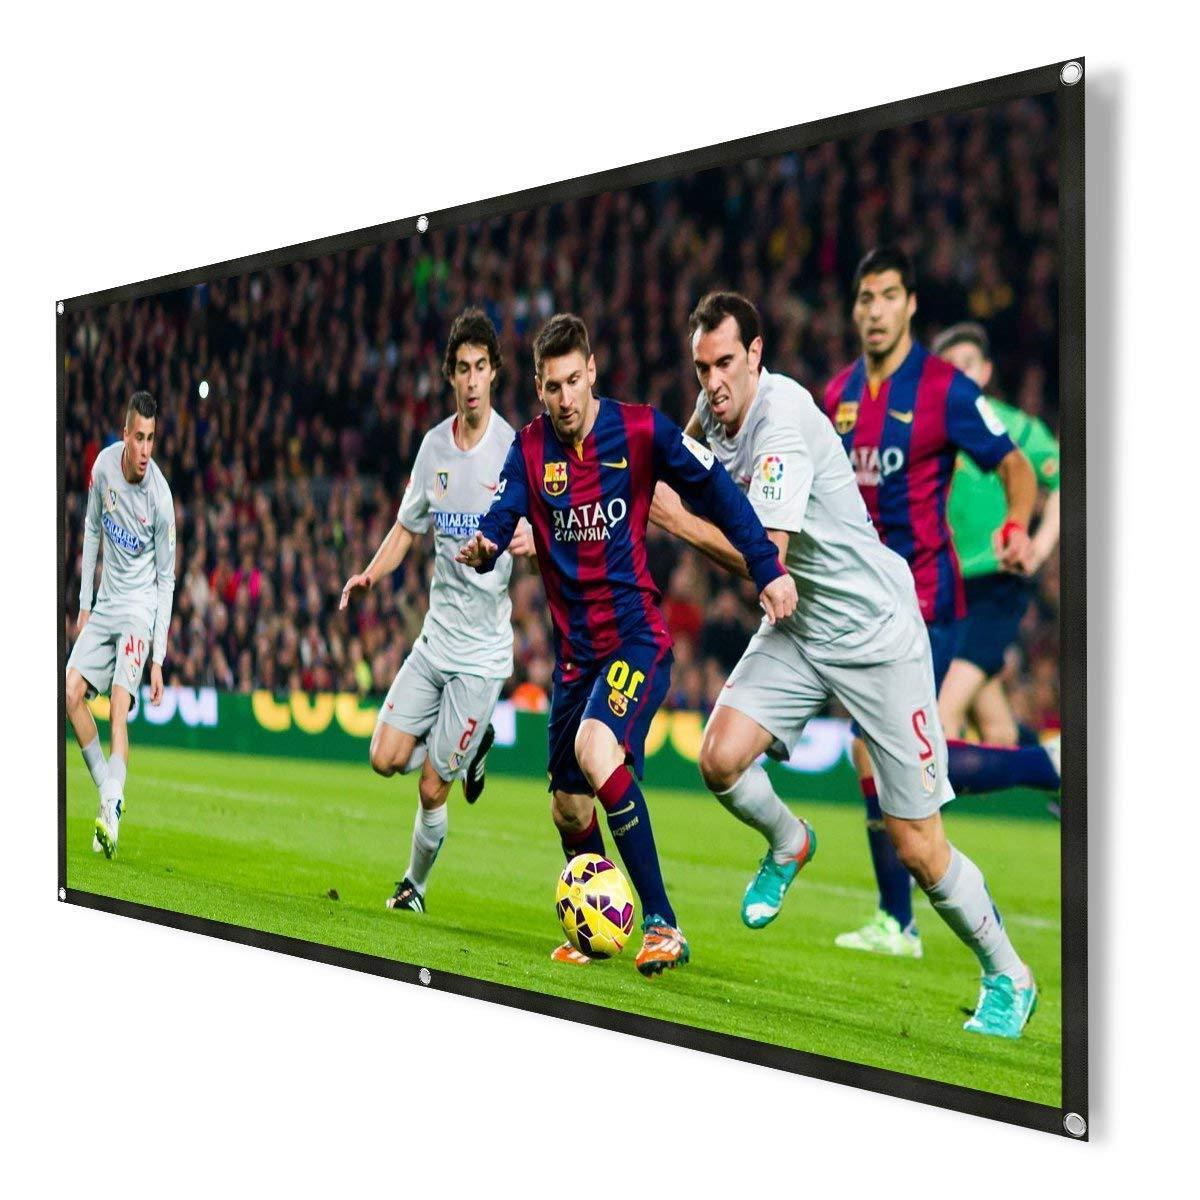 120 inch 16 9 hd portable projector